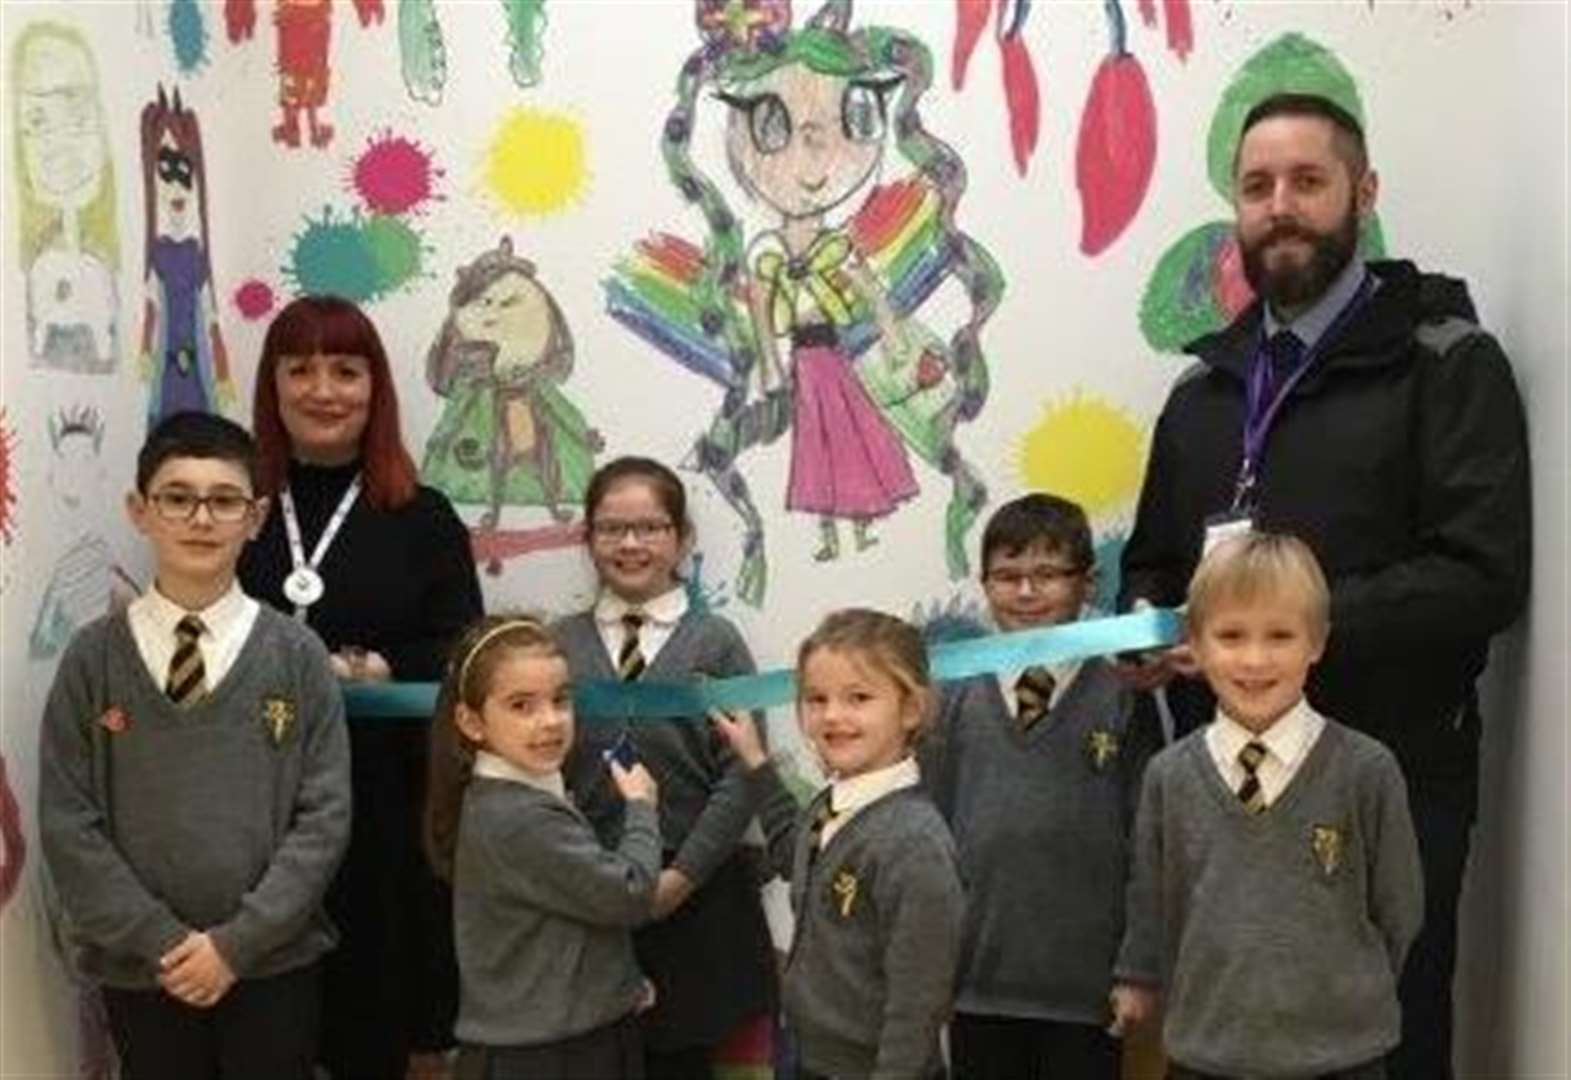 Prize-winning superhero mural unveiled